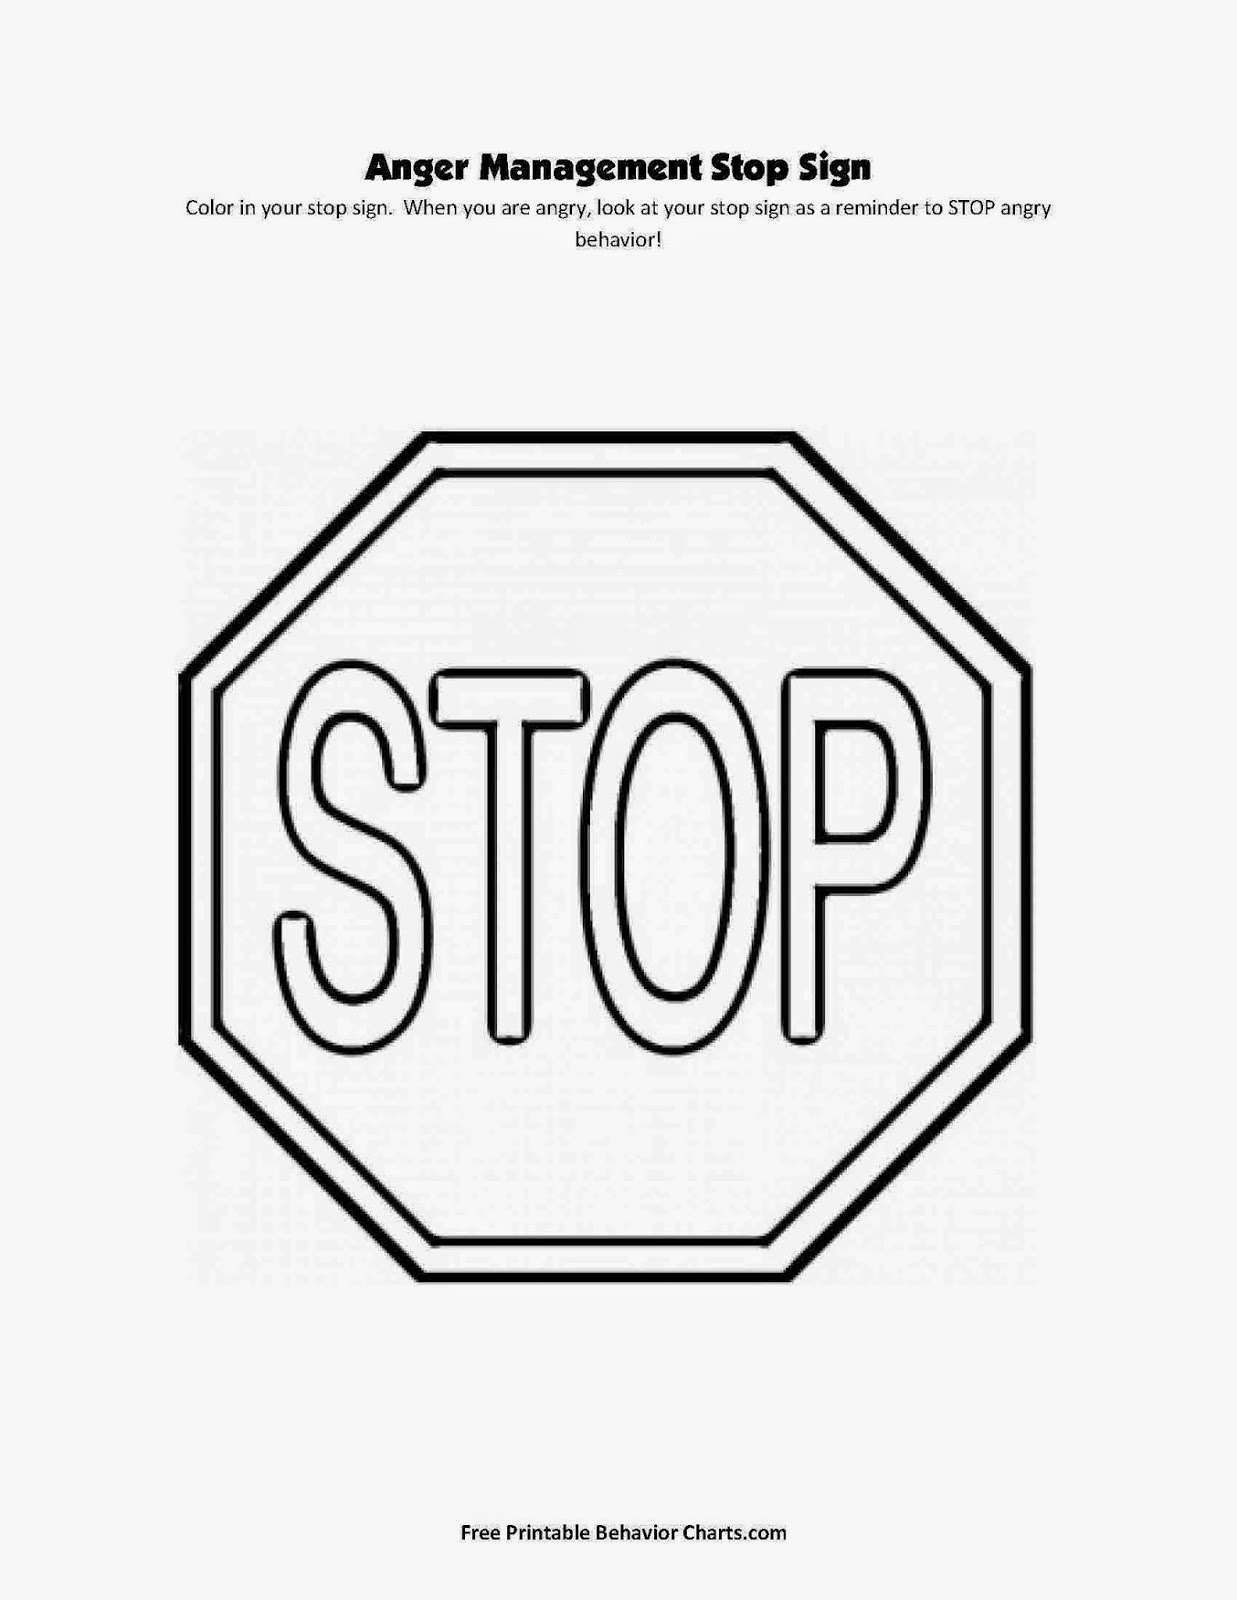 gingerbread man coloring page 100 directions - Stop Sign Coloring Page Printable